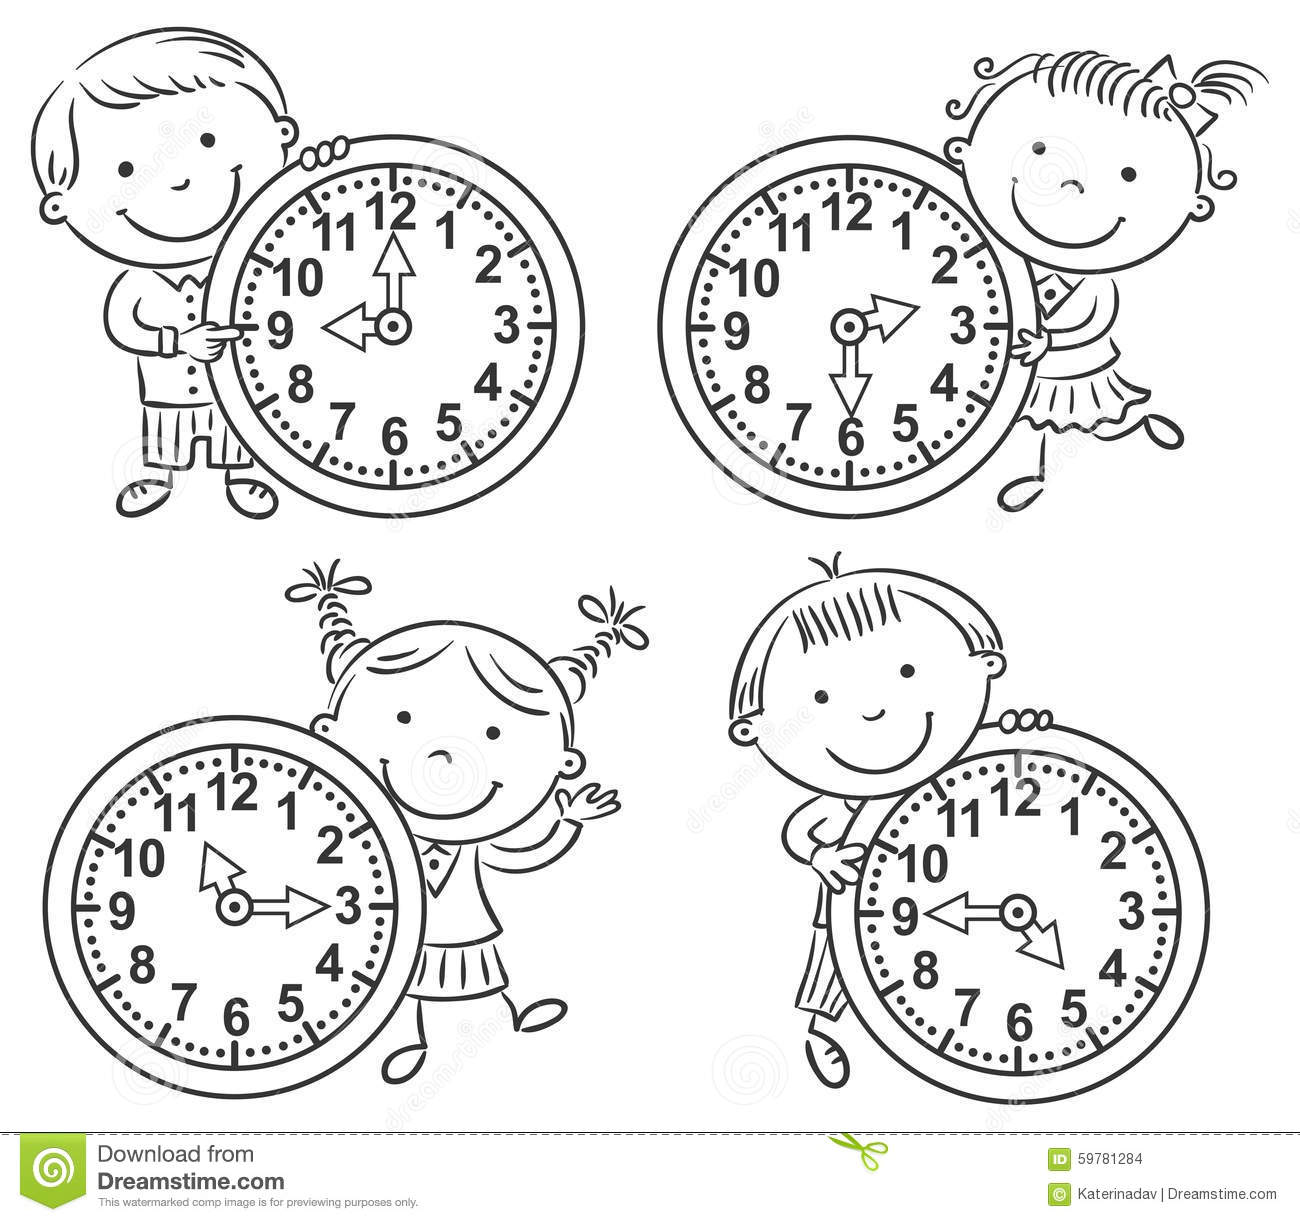 Telling The Time Draw The Time Cartoon Vector